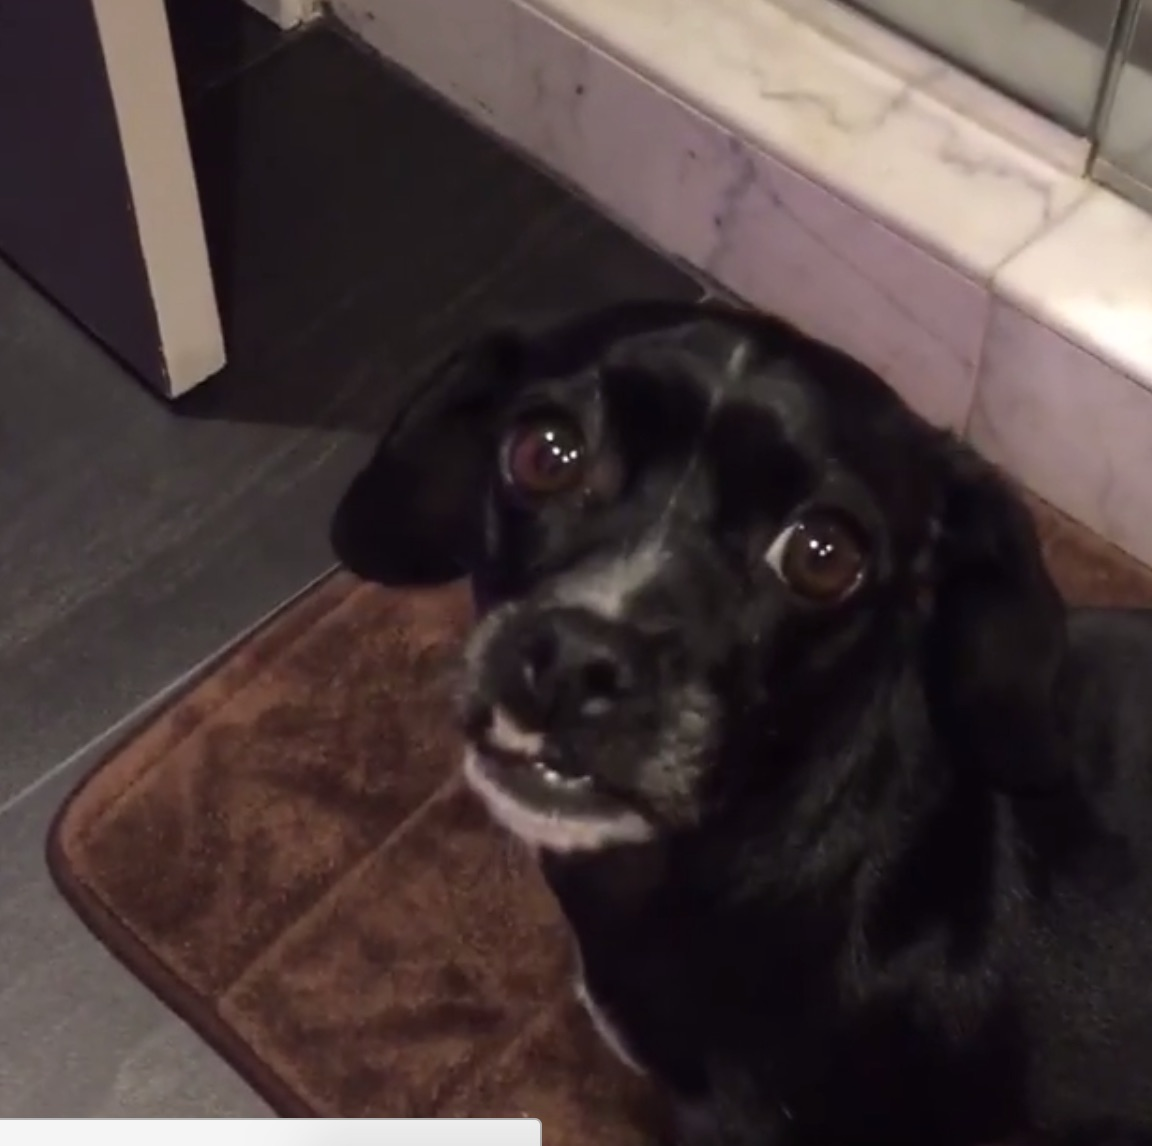 Sarah Silverman's dog sneaking into the bathroom is the cutest thing we've seen today